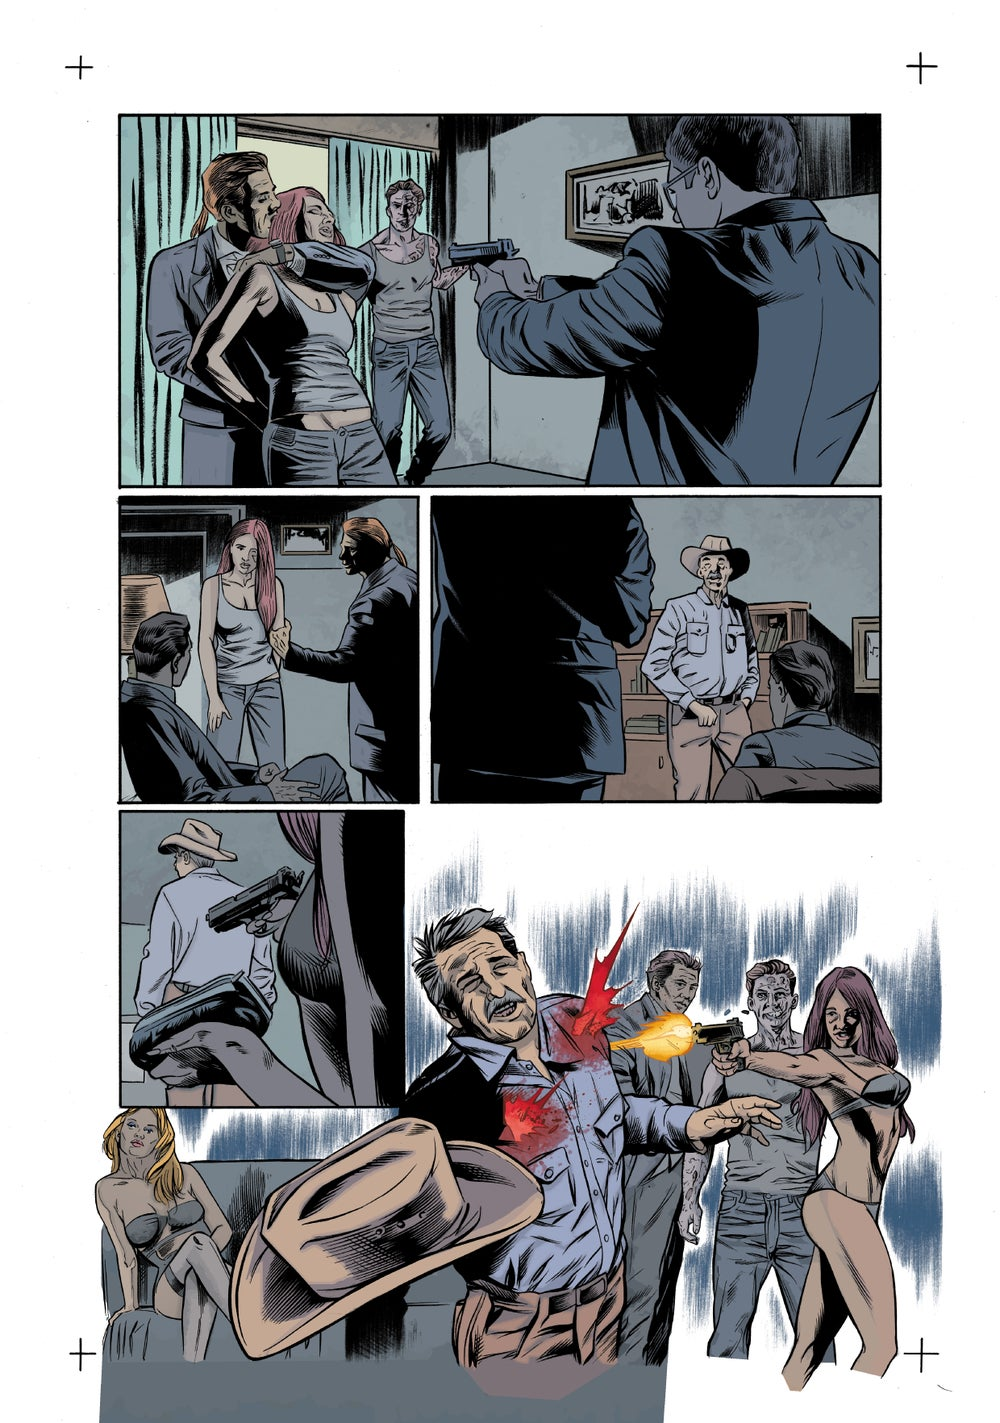 Image of Zombie with a Shotgun Comic Image Signed and printed on 17x22 Photo paper (Issue #1 Page 17)